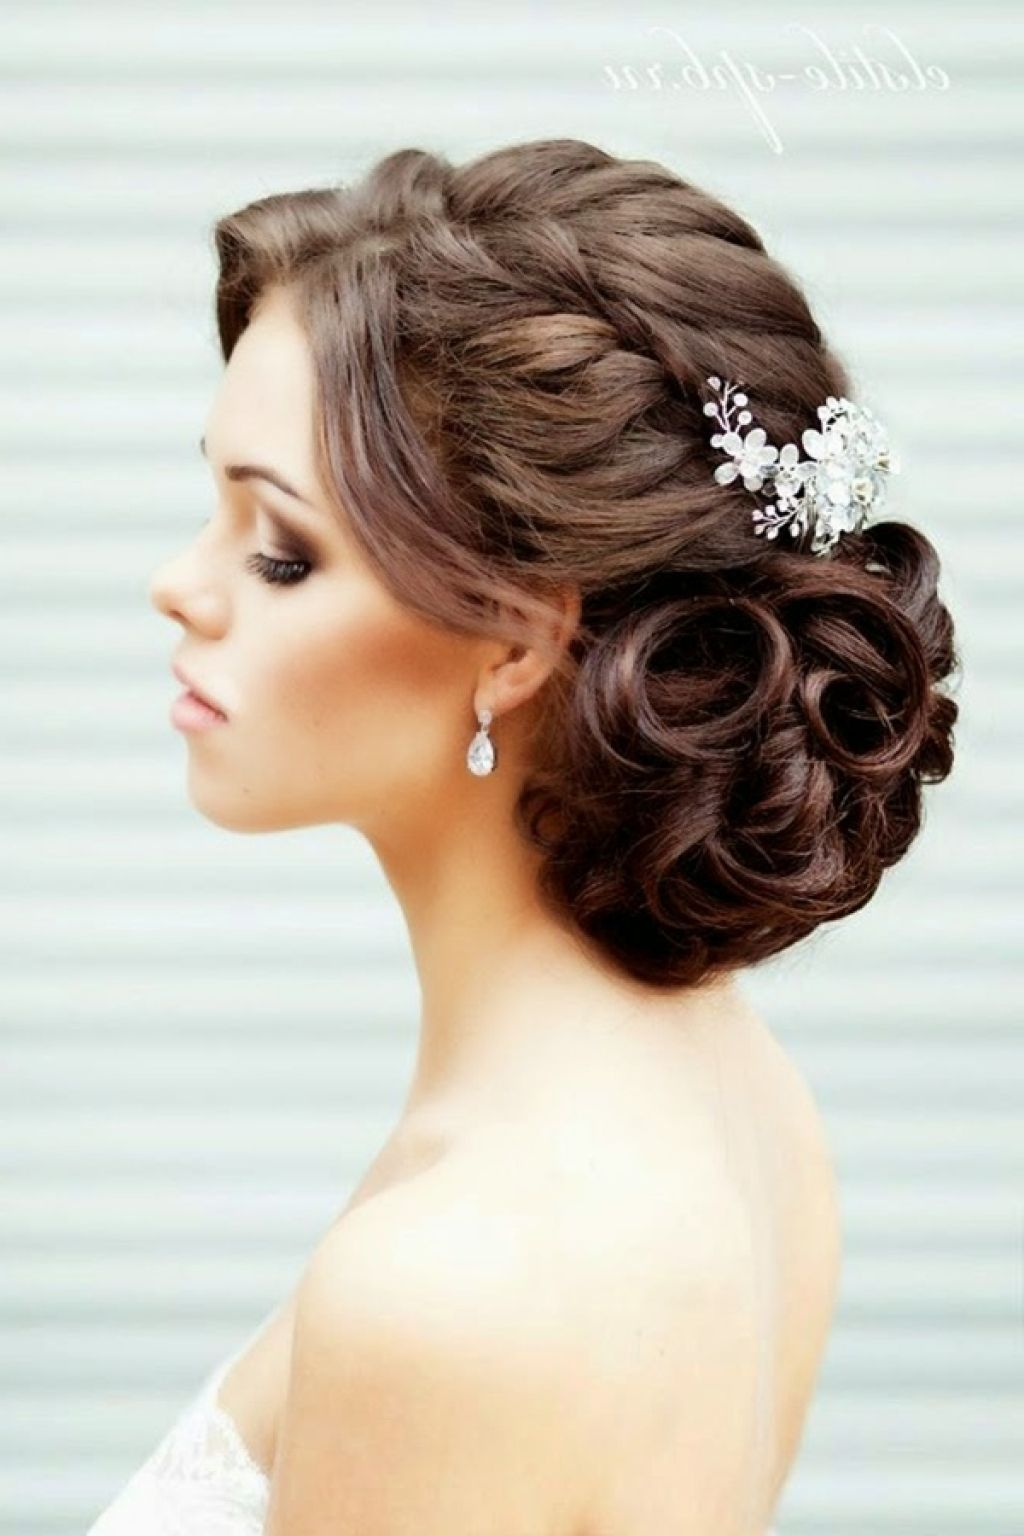 easy updo hairstyles for long hair hairstyle tips bridesmaid